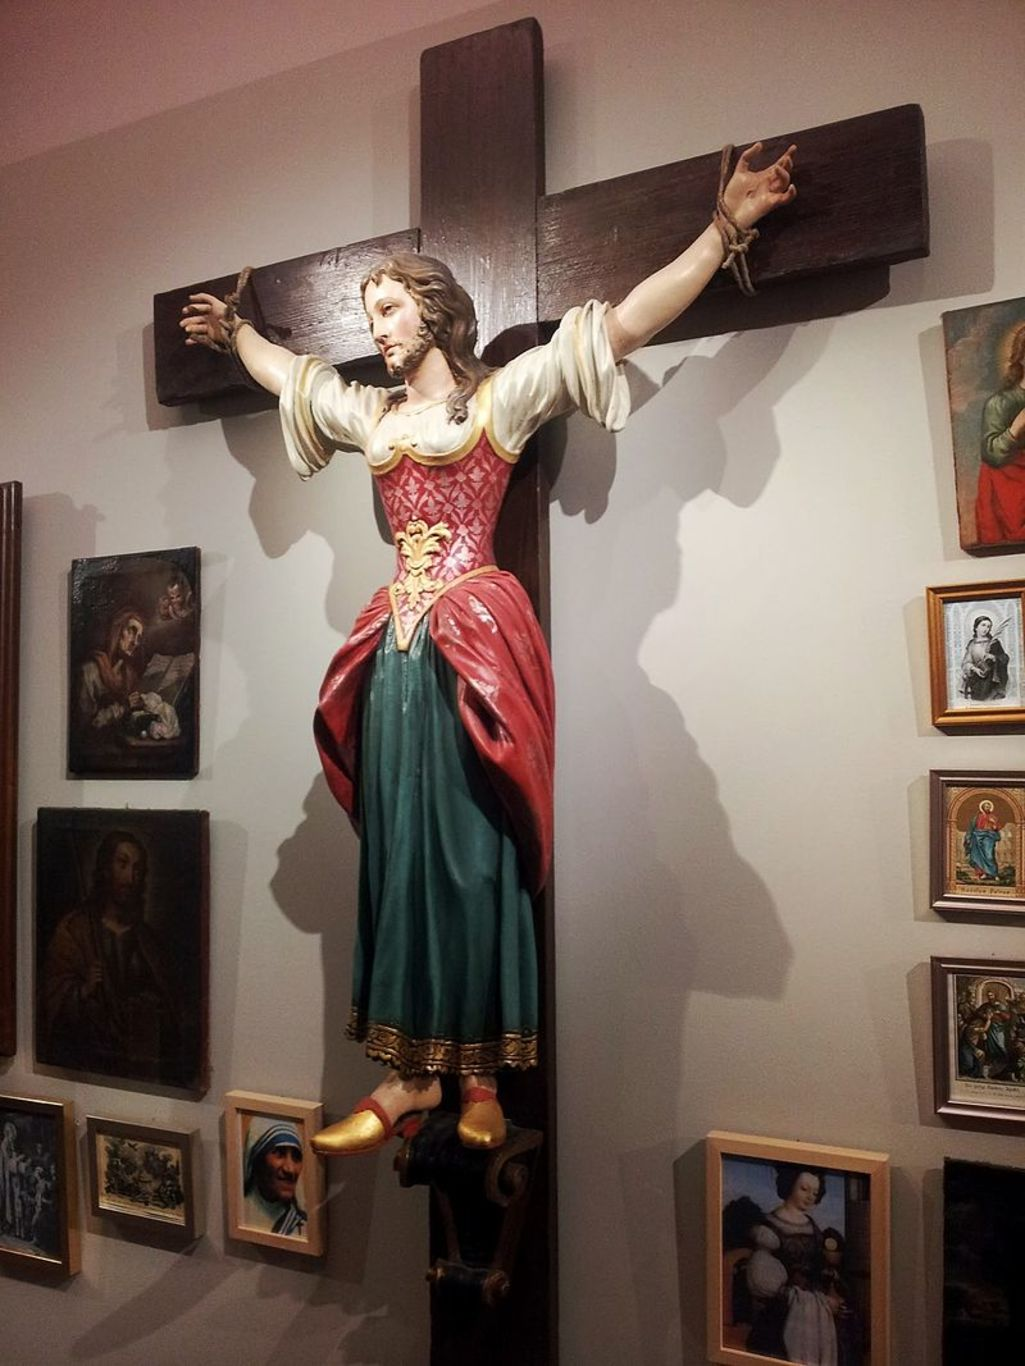 Saint Wilgefortis in the diocesan museum of Graz, Austria. Wikimedia Commons